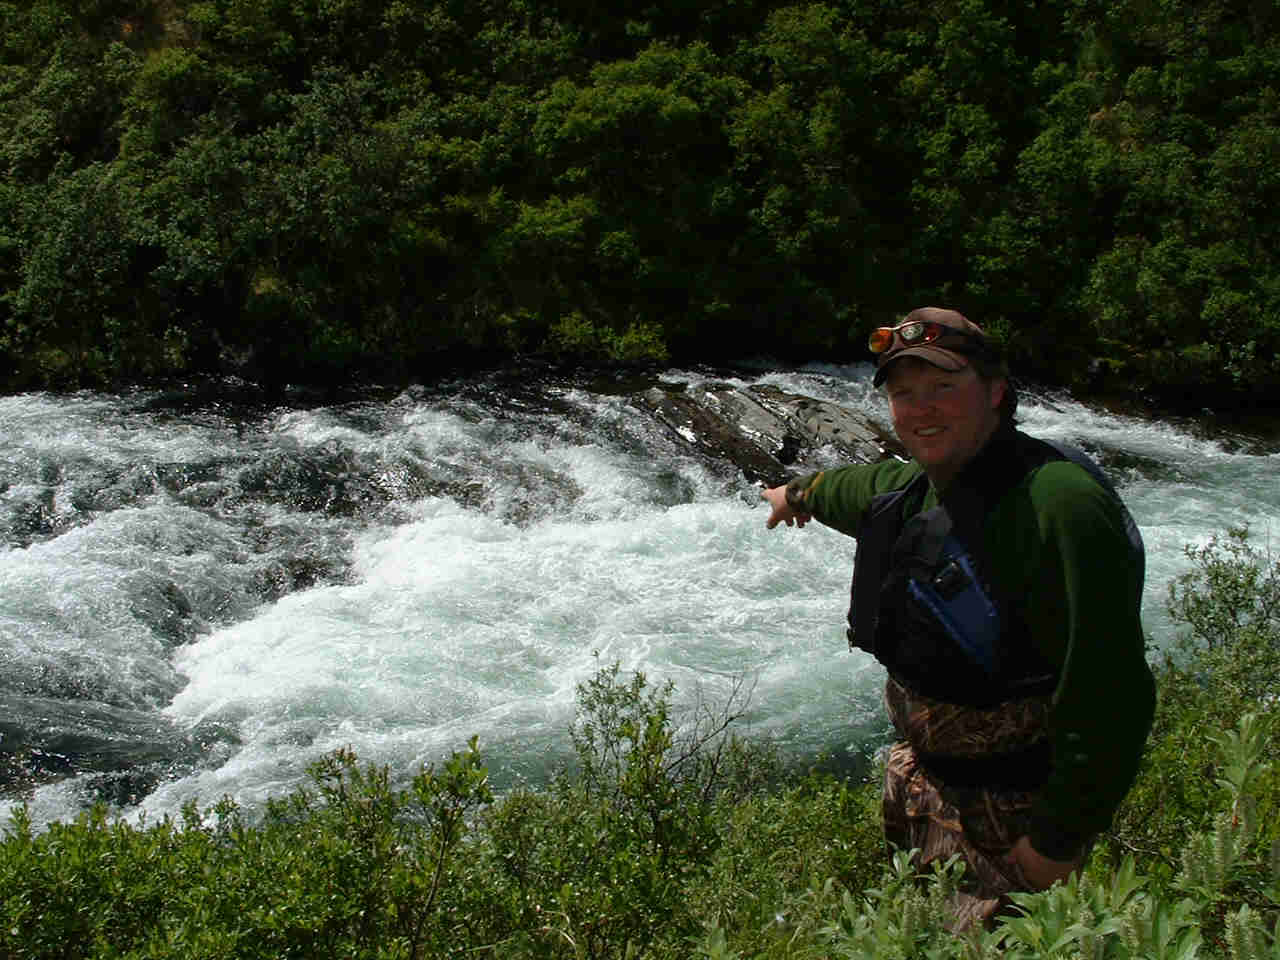 Thrilling Technical Whitewater - American Creek Falls - ALASKA RAFT CONNECTION